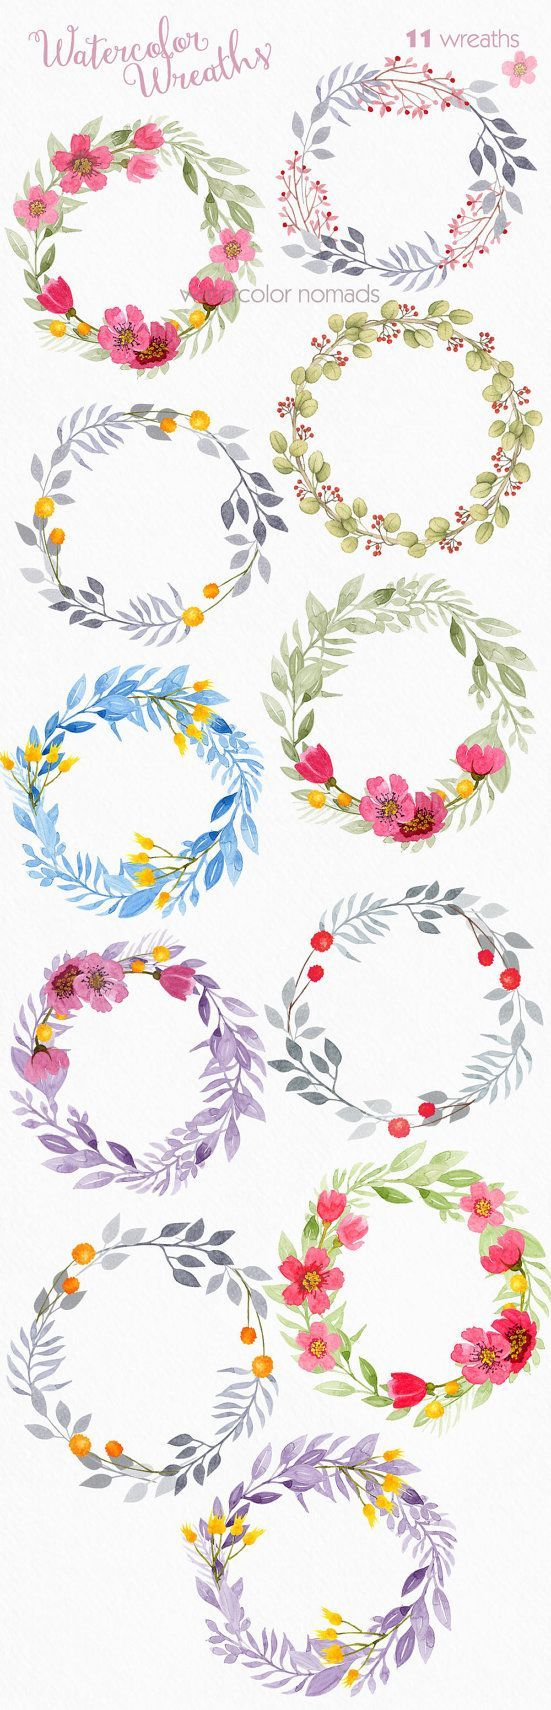 Floral wreath clipart watercolor clipart by WatercolorNomads